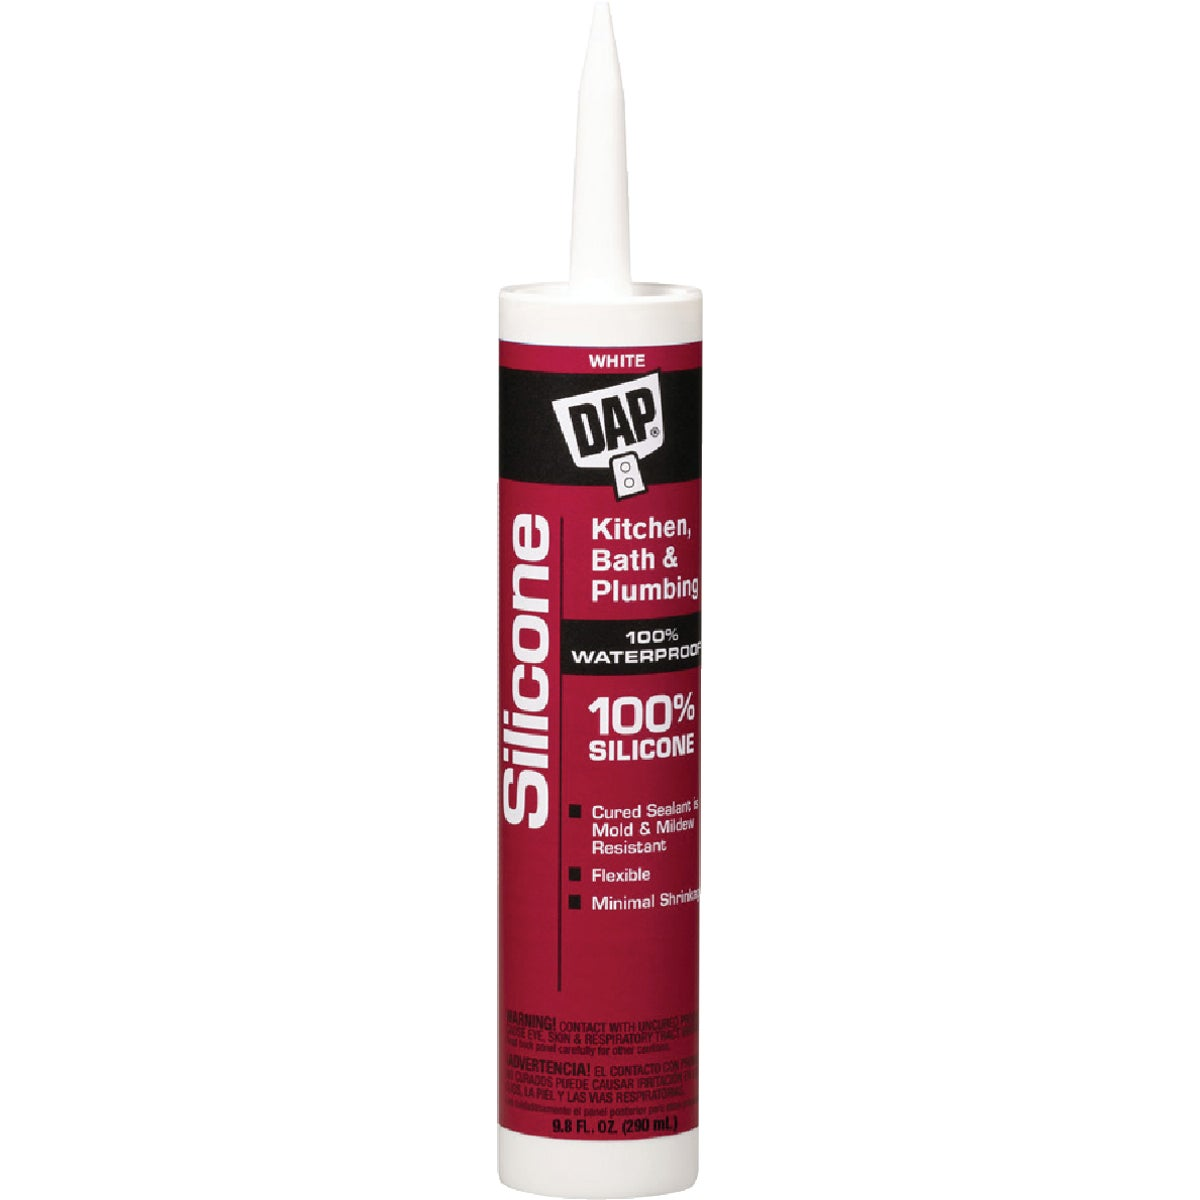 WHITE SILICONE SEALANT - 08640 by Dap Inc